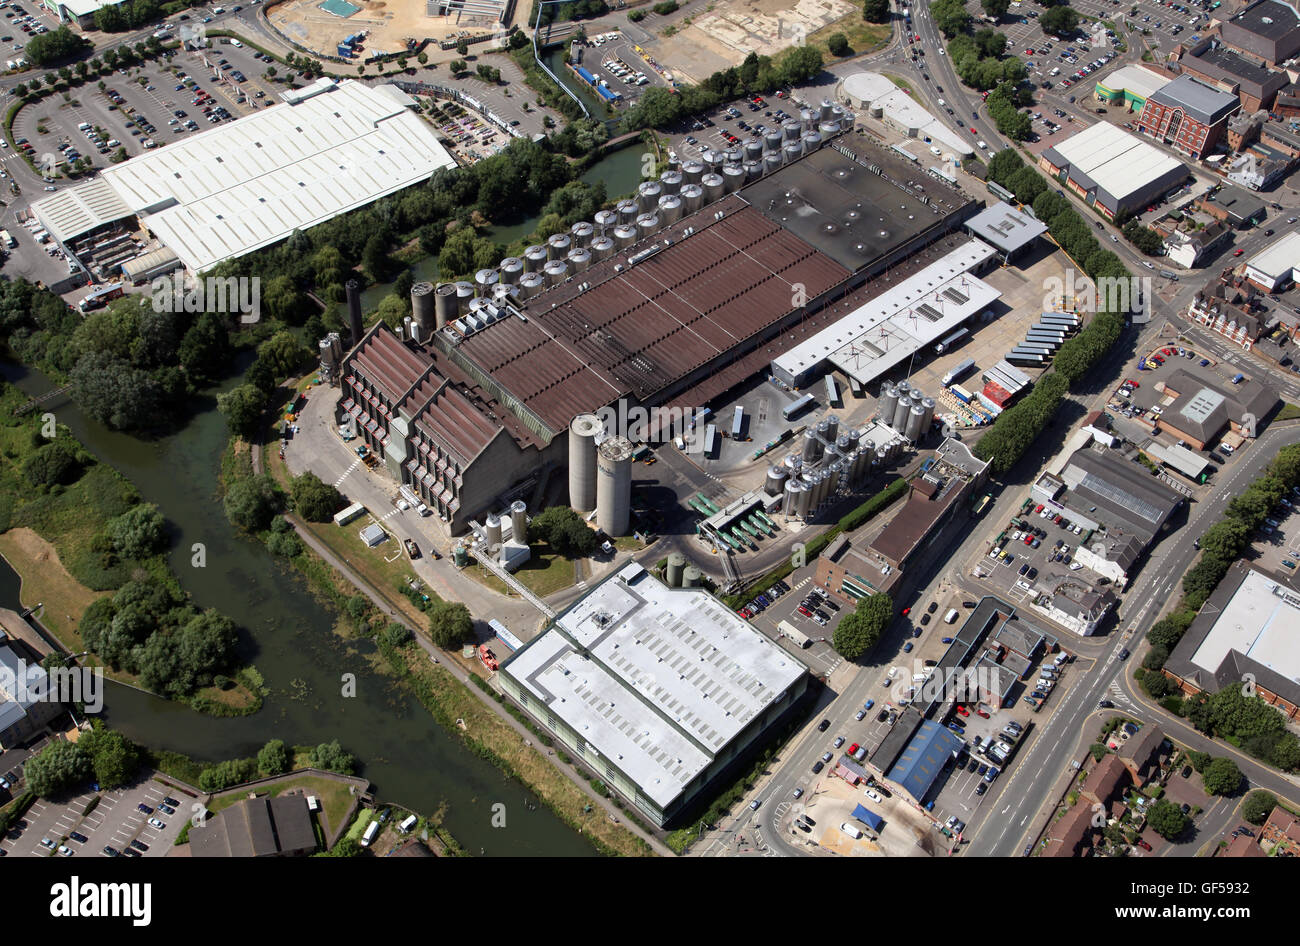 aerial view of the Carlsberg brewery factory in Northampton, UK - Stock Image